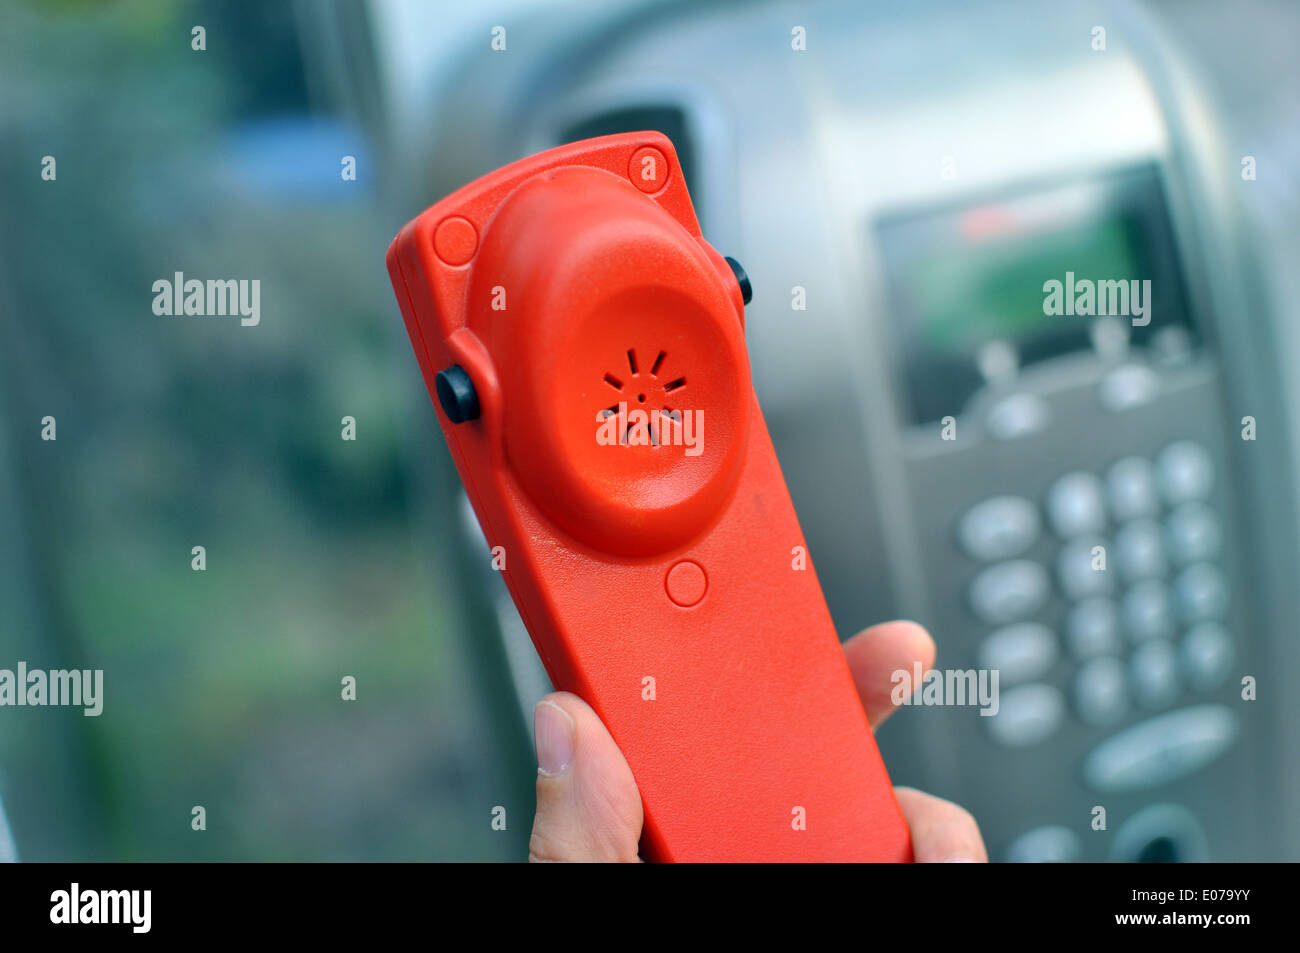 Hand holding a red handset of a public telephone - Stock Image